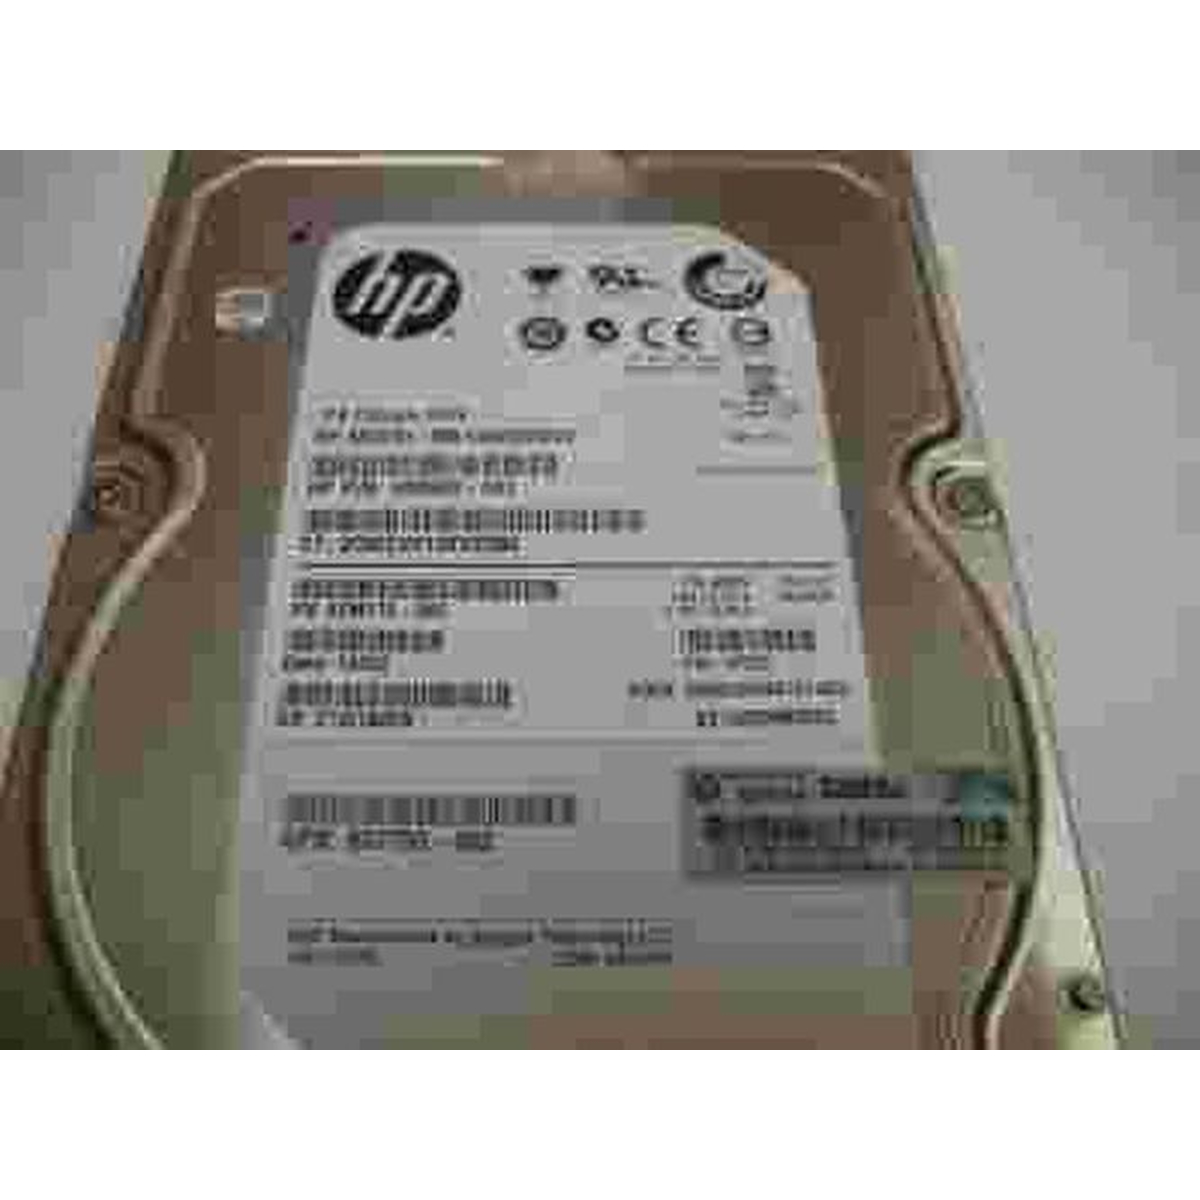 HP 1TB interne Festplatte MB1000GCWCV 7200rpm SATA #gut